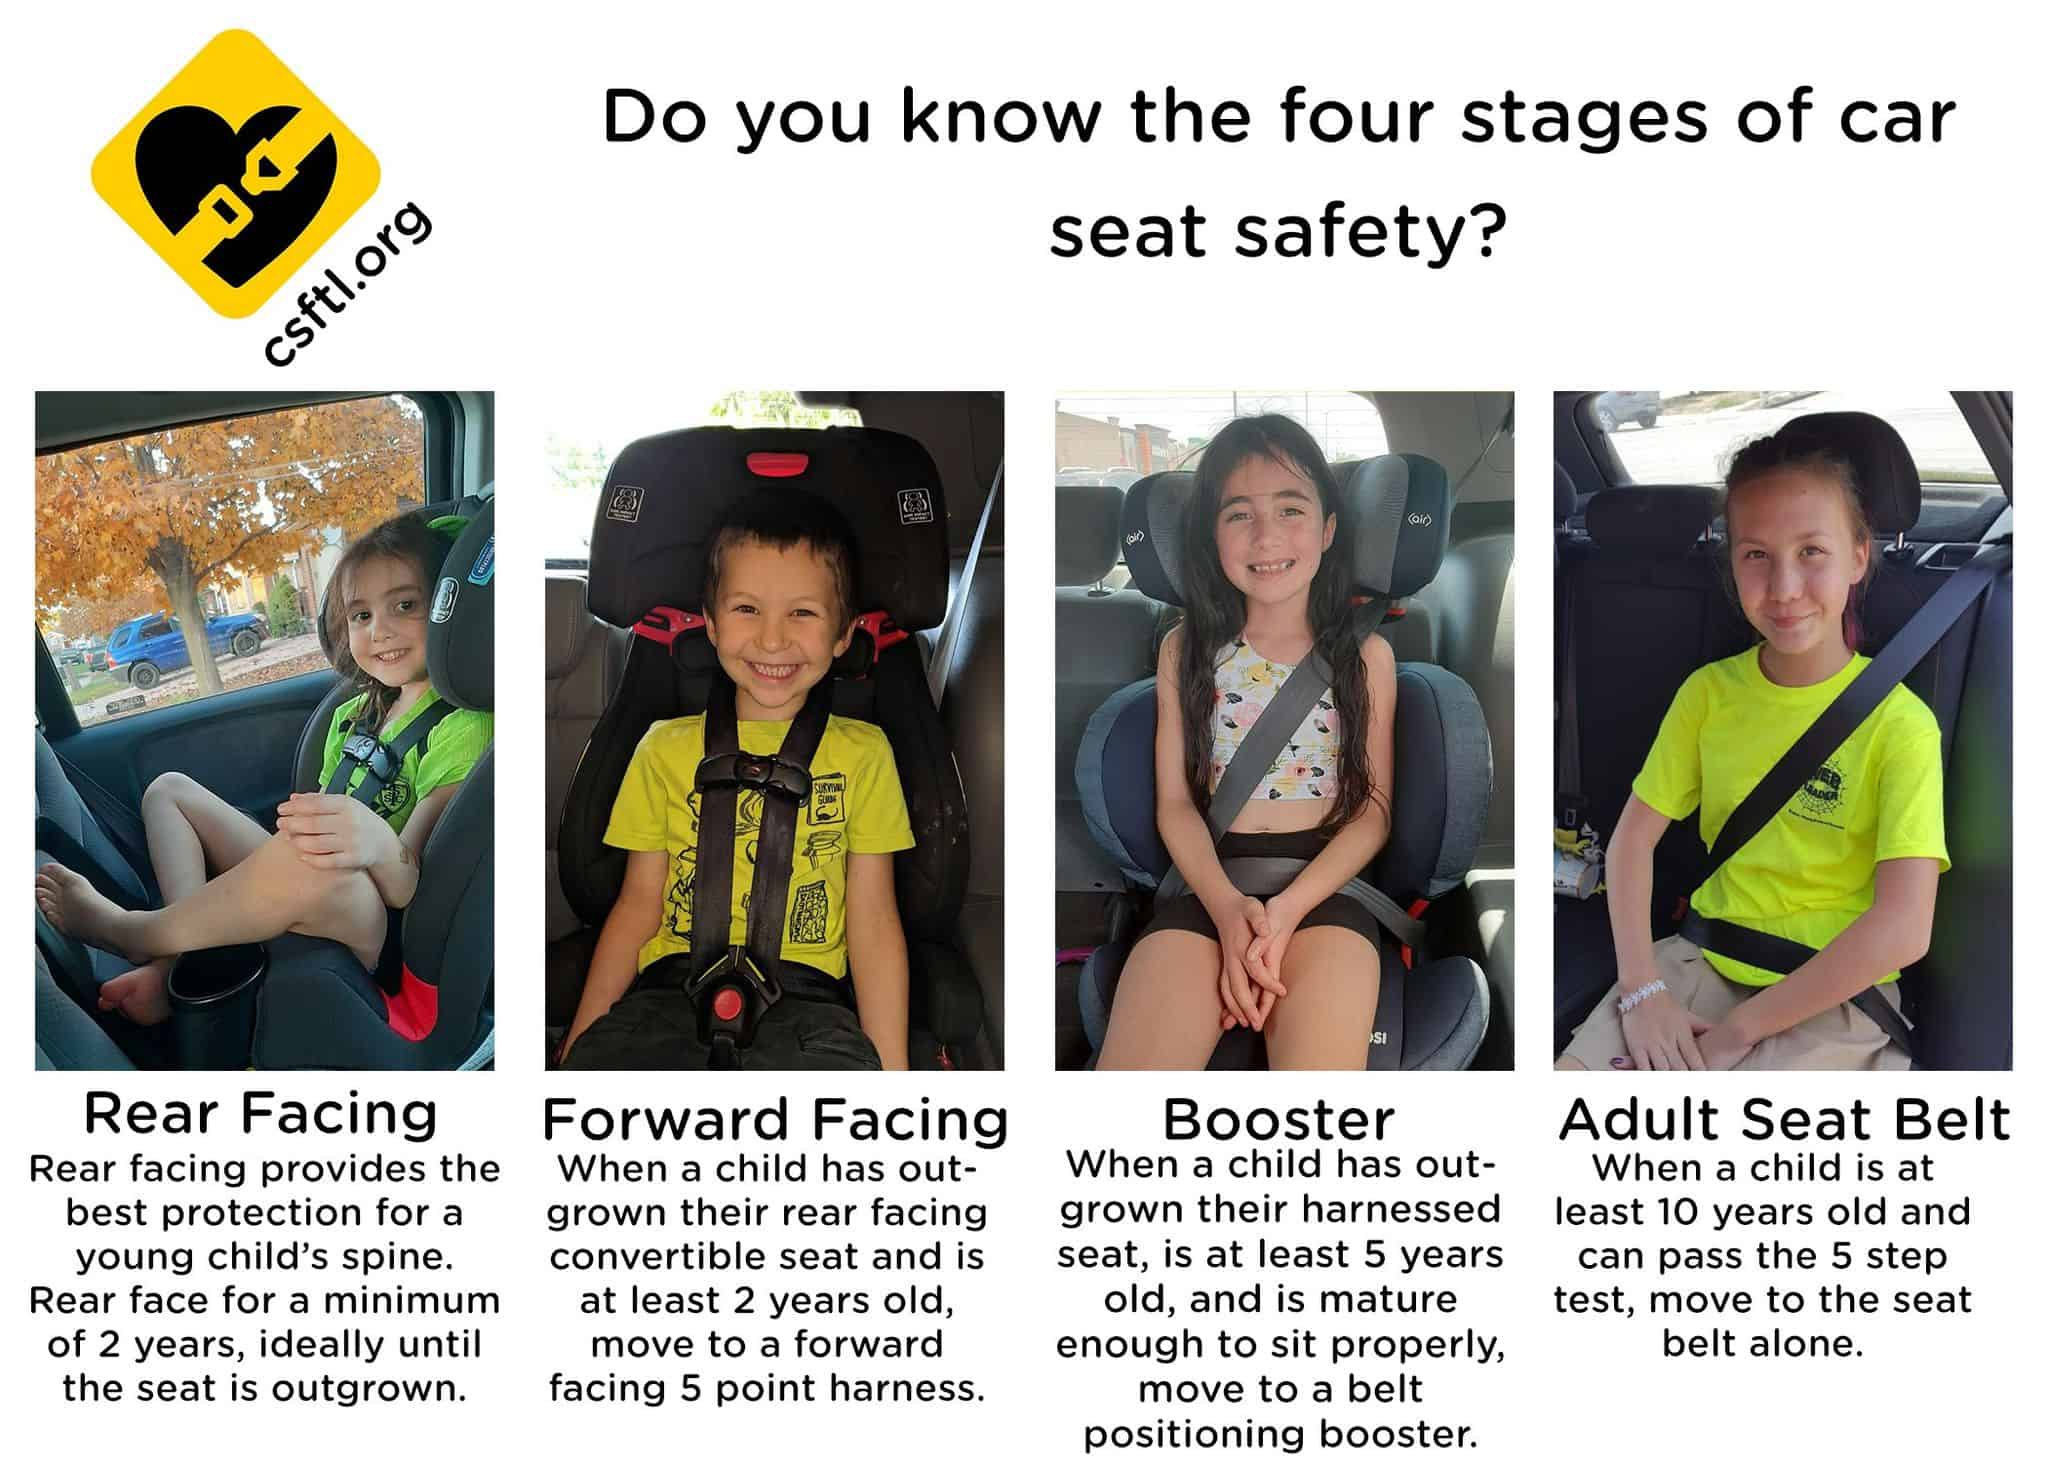 The Four Stages of Car Seat Safety